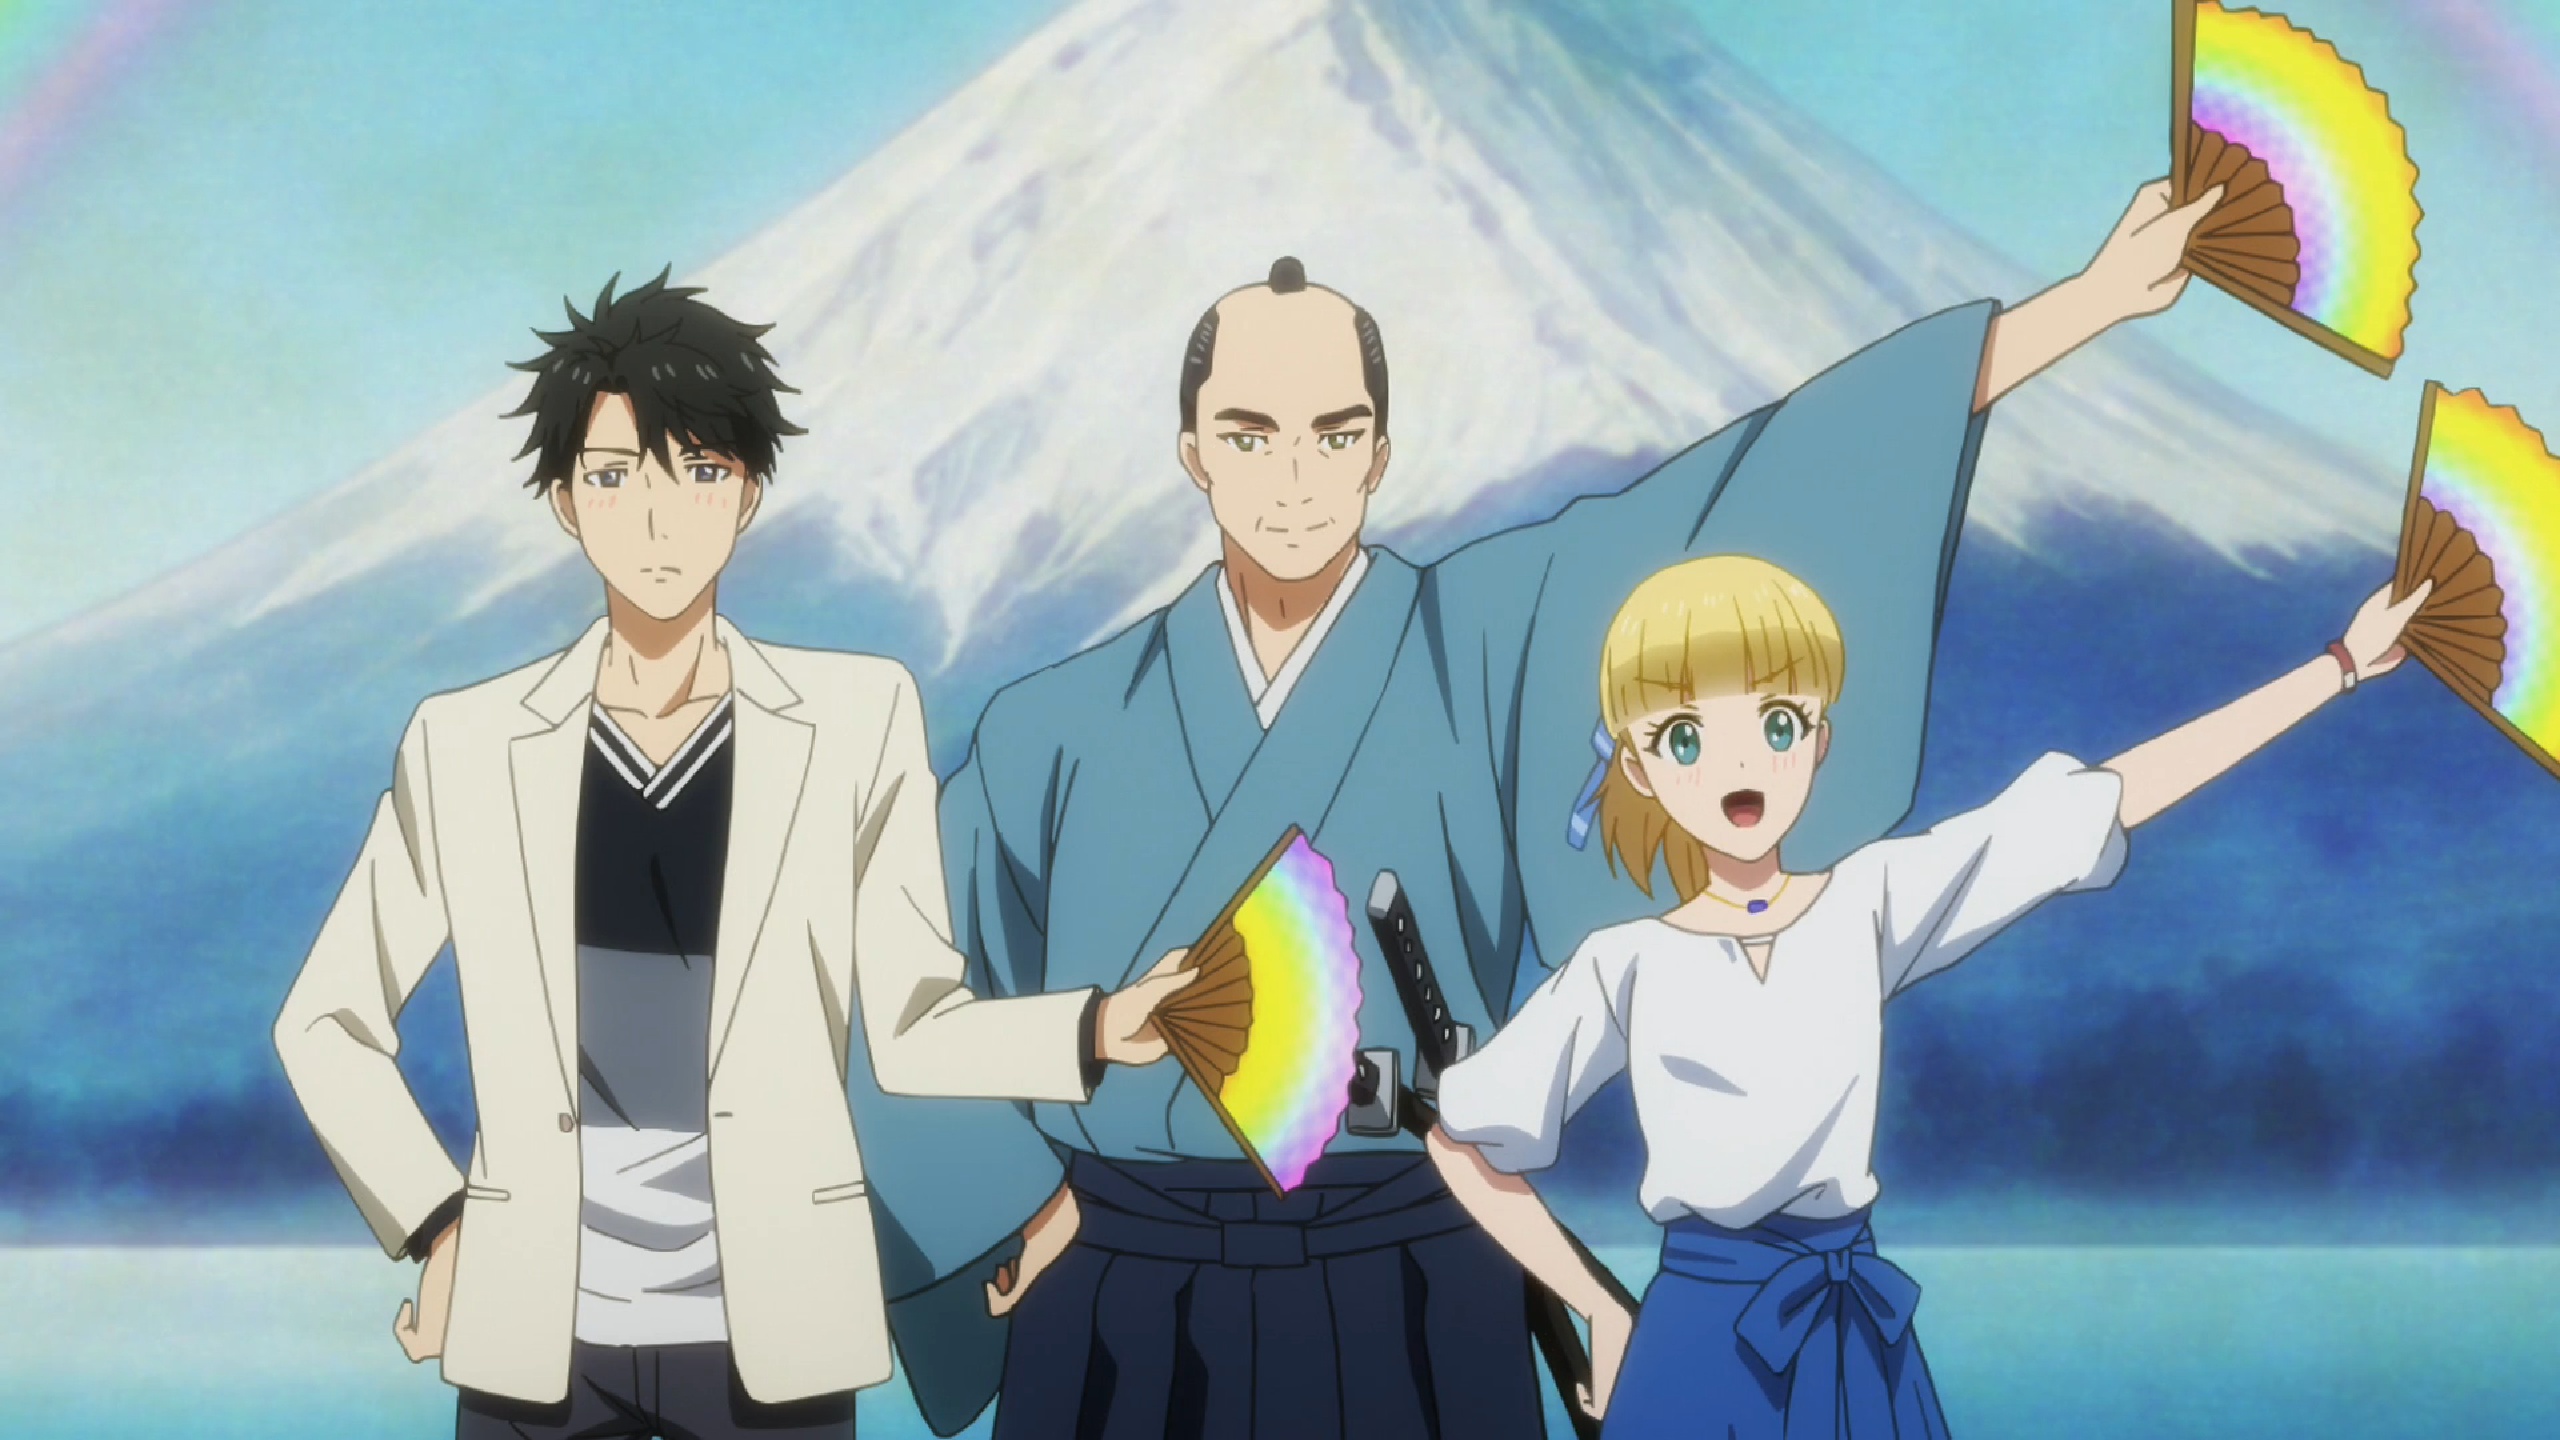 A man in traditional Japanese robes stands solemnly holding out a rainbow-colored fan. In front of him are two teenagers also holding fans. The blonde girls smiles and mimics the man's pose perfectly; the dark-haired teen boy looks a bit embarrassed and mimics the pose more reluctantly.